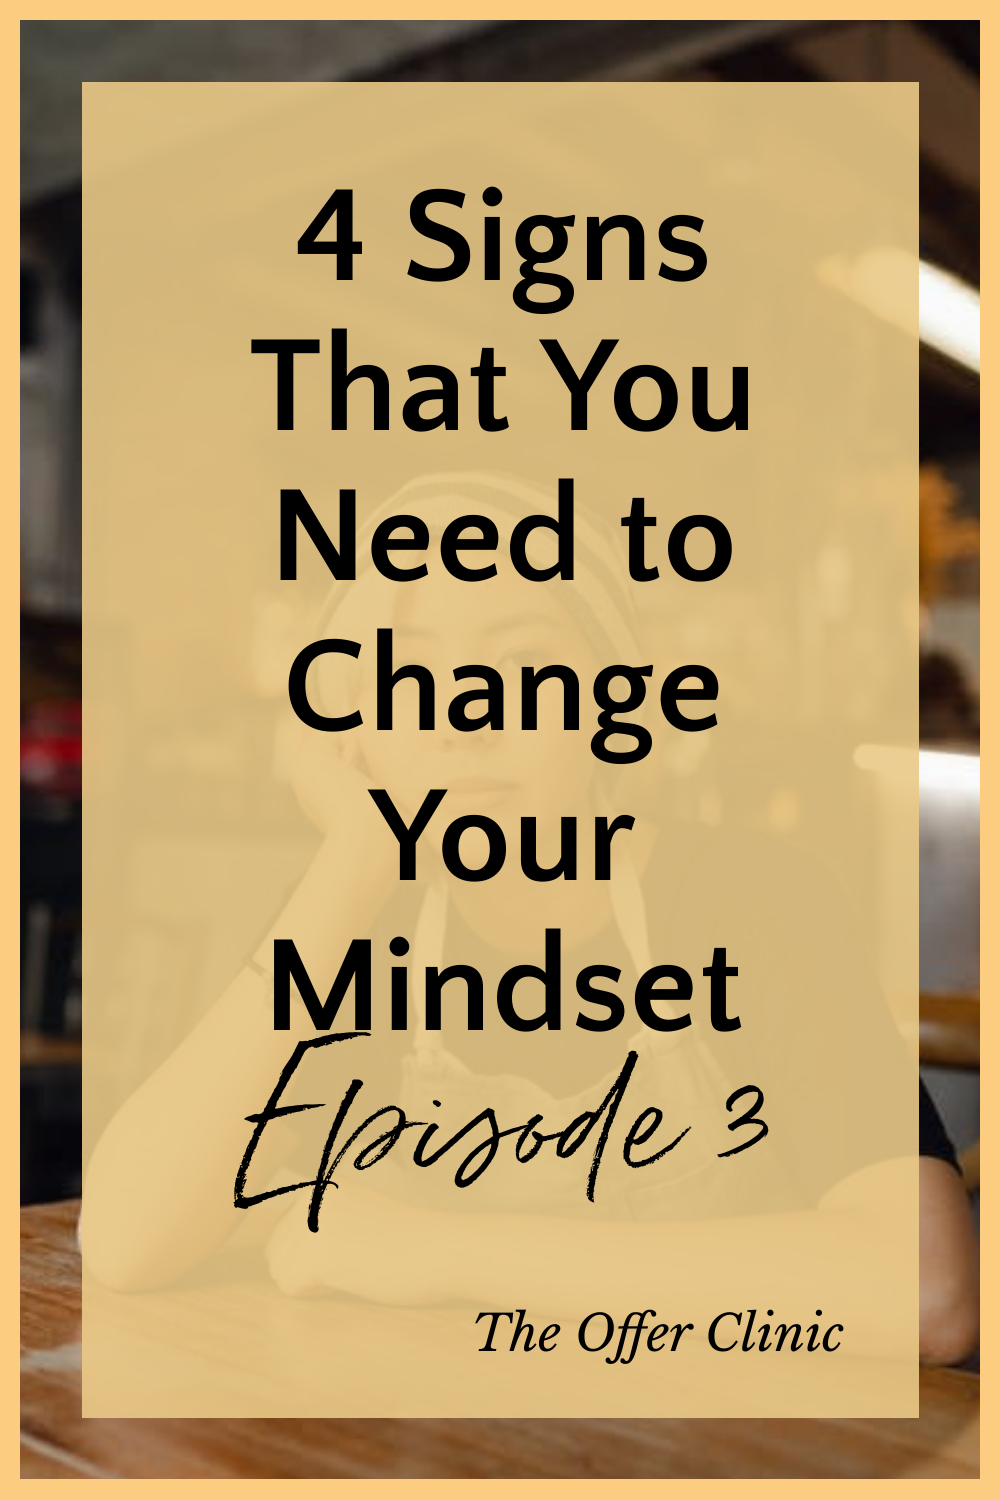 4 signs you need to change your mindset